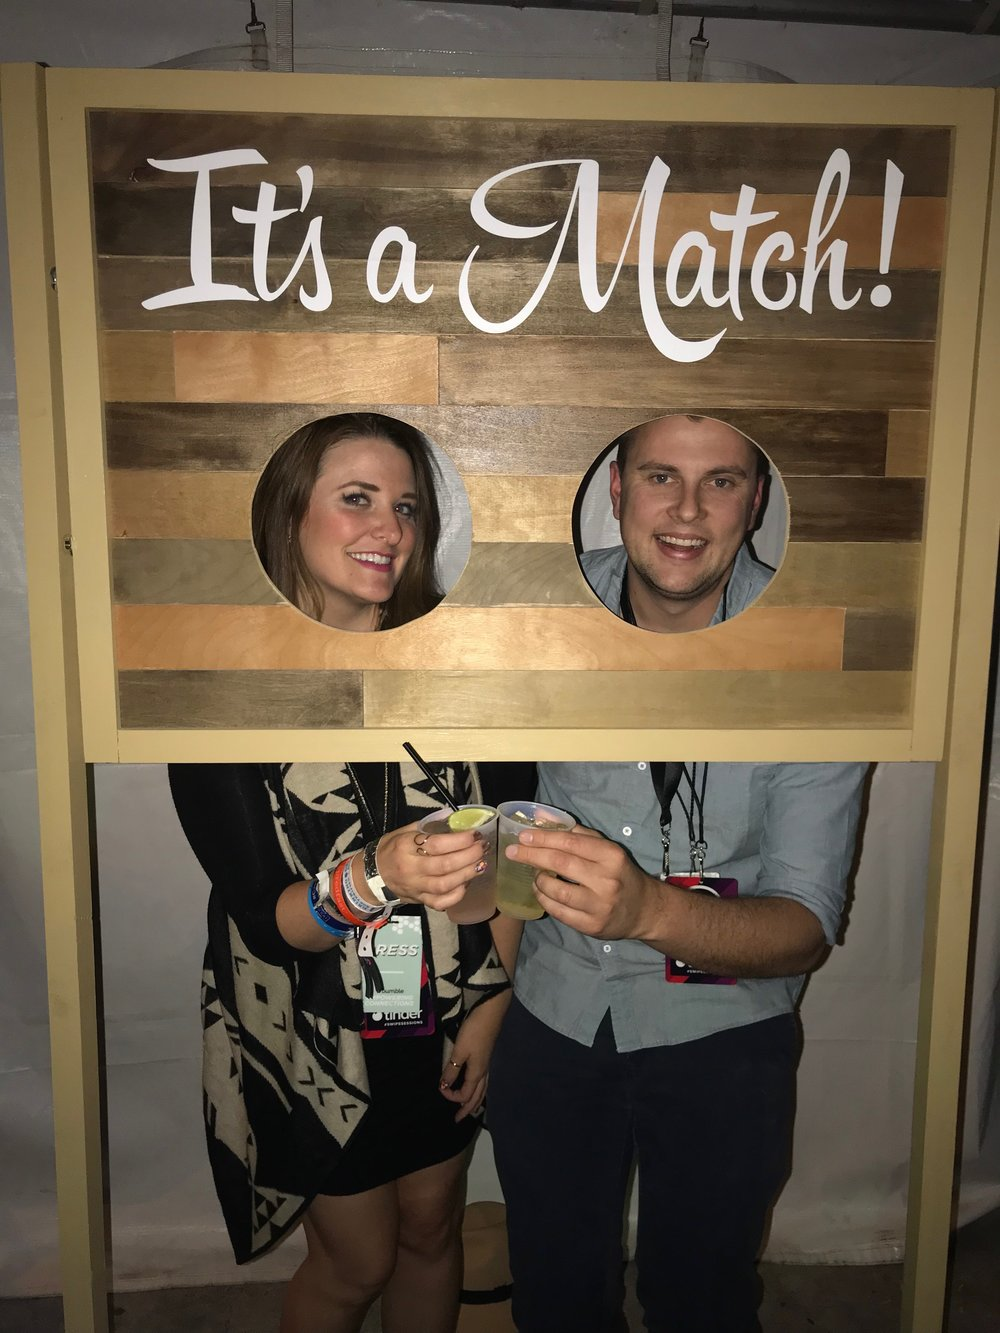 Tinder at SXSW | coupleinthekitchen.com